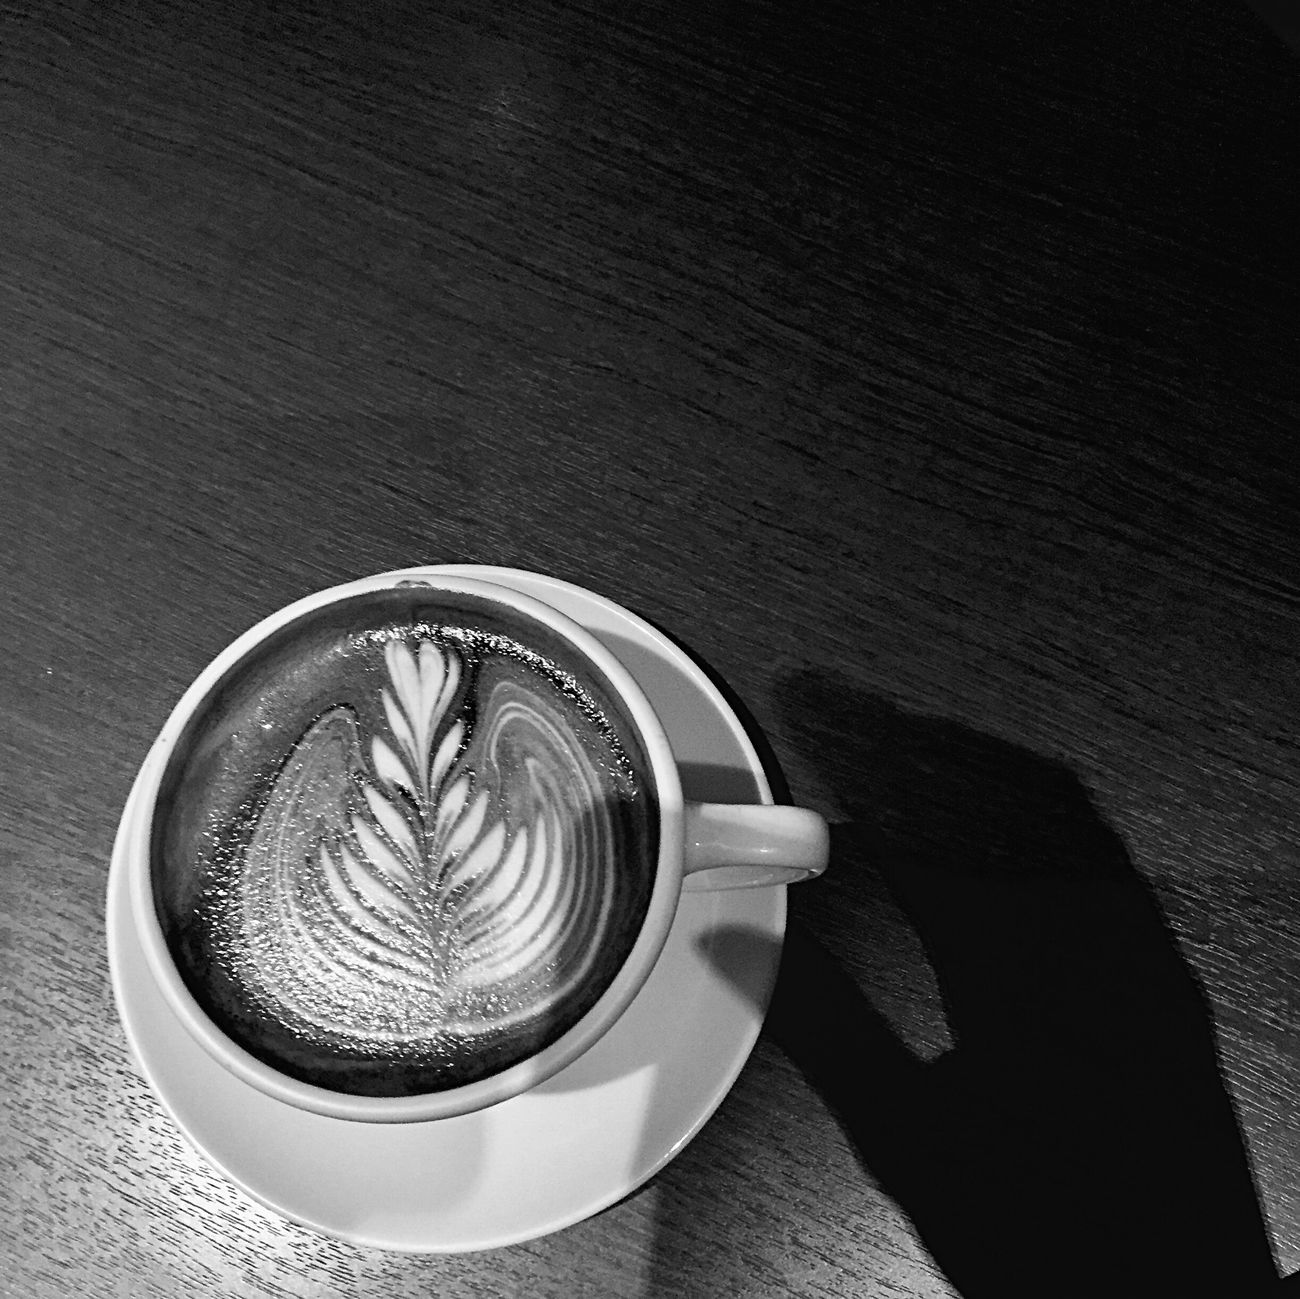 Coffee - Drink Coffee Cup Drink Refreshment High Angle View Table Coffee Coffee Time Addiction Love Latte Latteart Flower No People Shadow My Hand  Blackandwhite Black & White IPhoneography after this morning work.